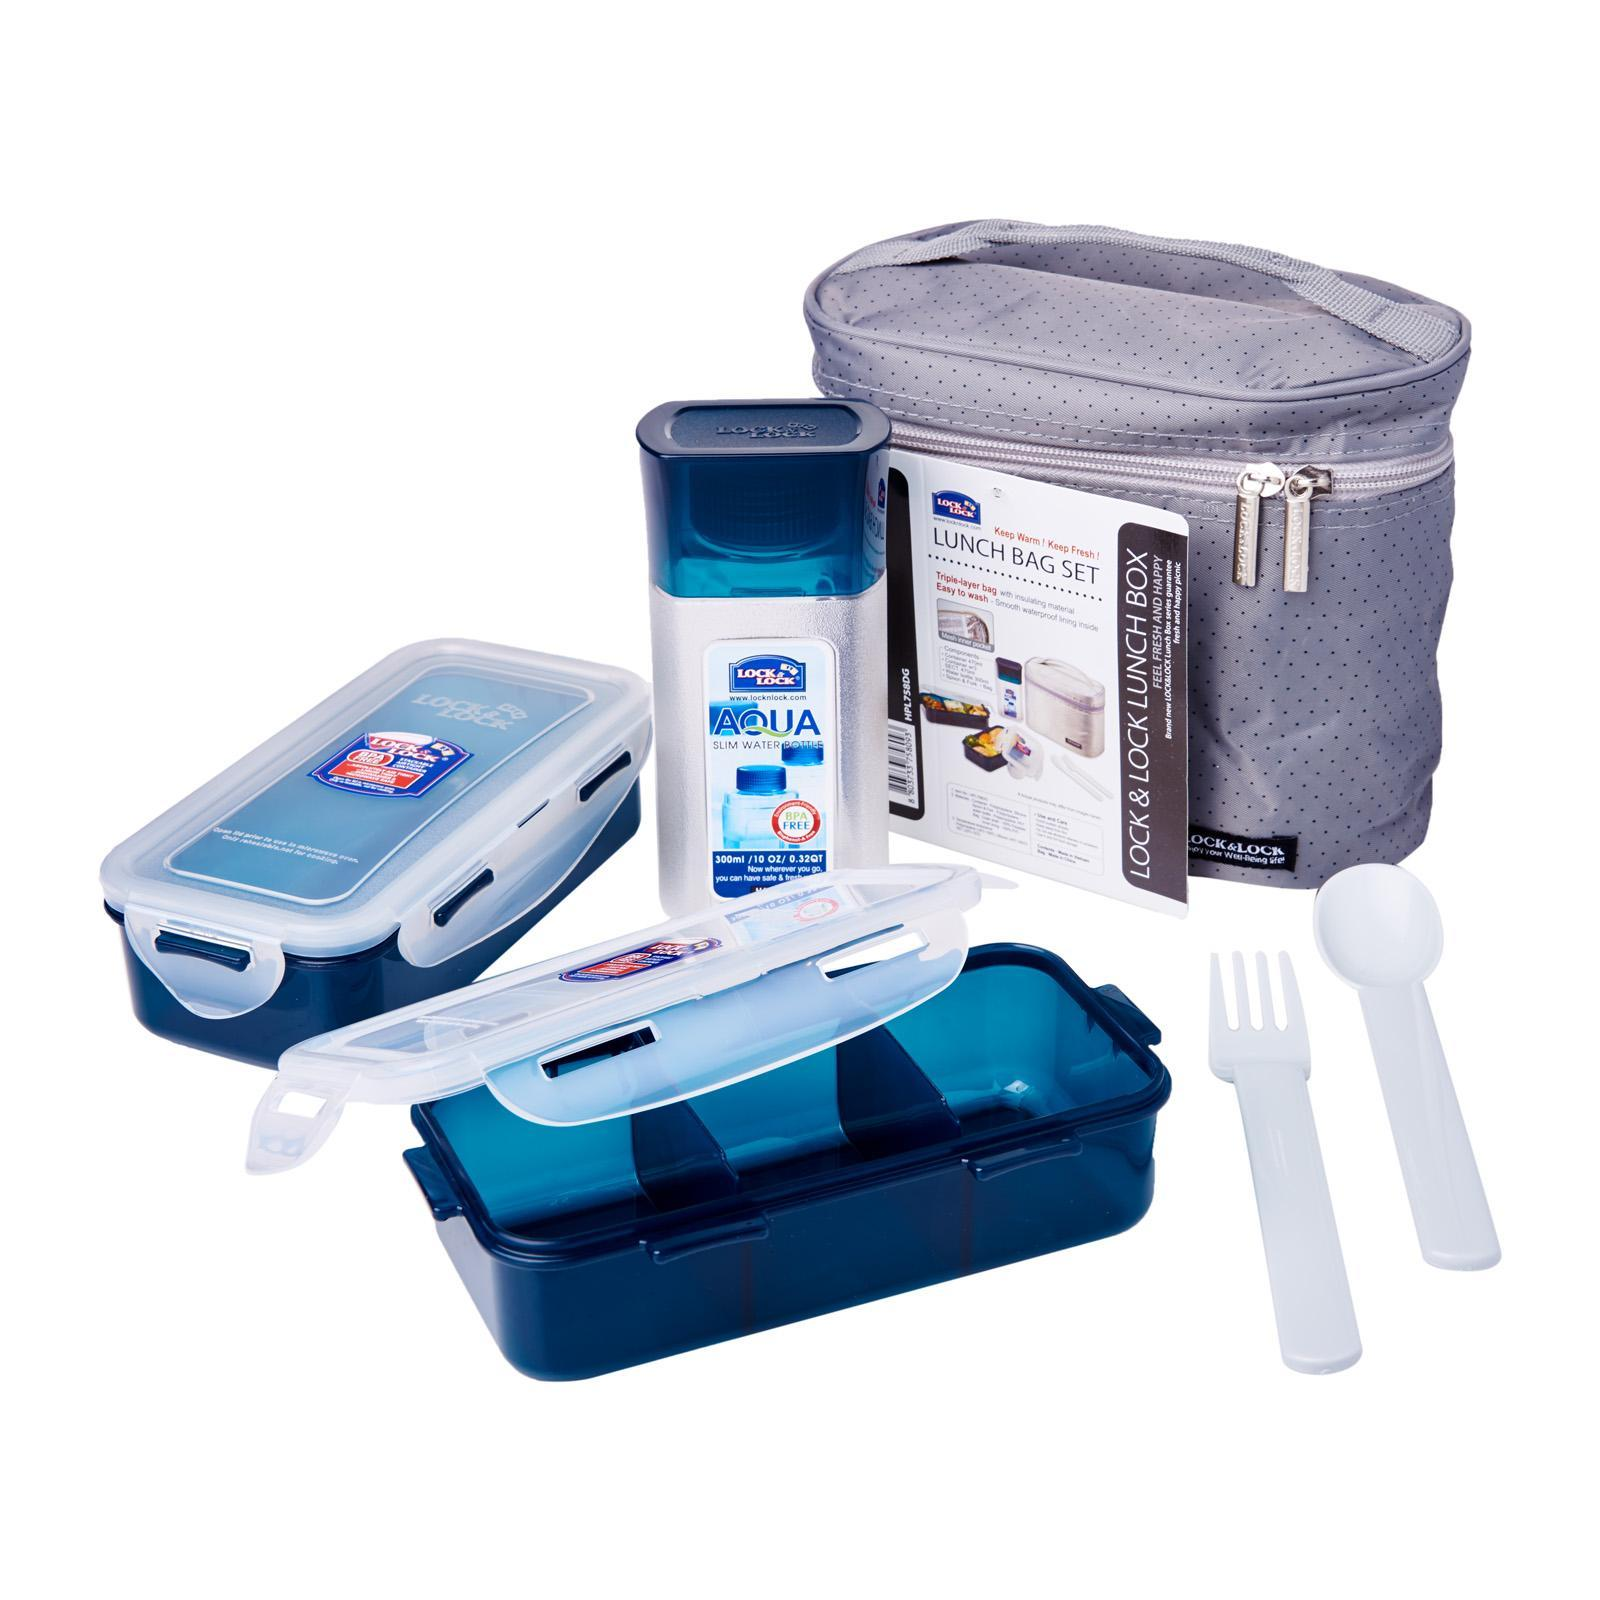 Lock and Lock Classic Lunch Box 2 Pieces With Lunch Bag Grey